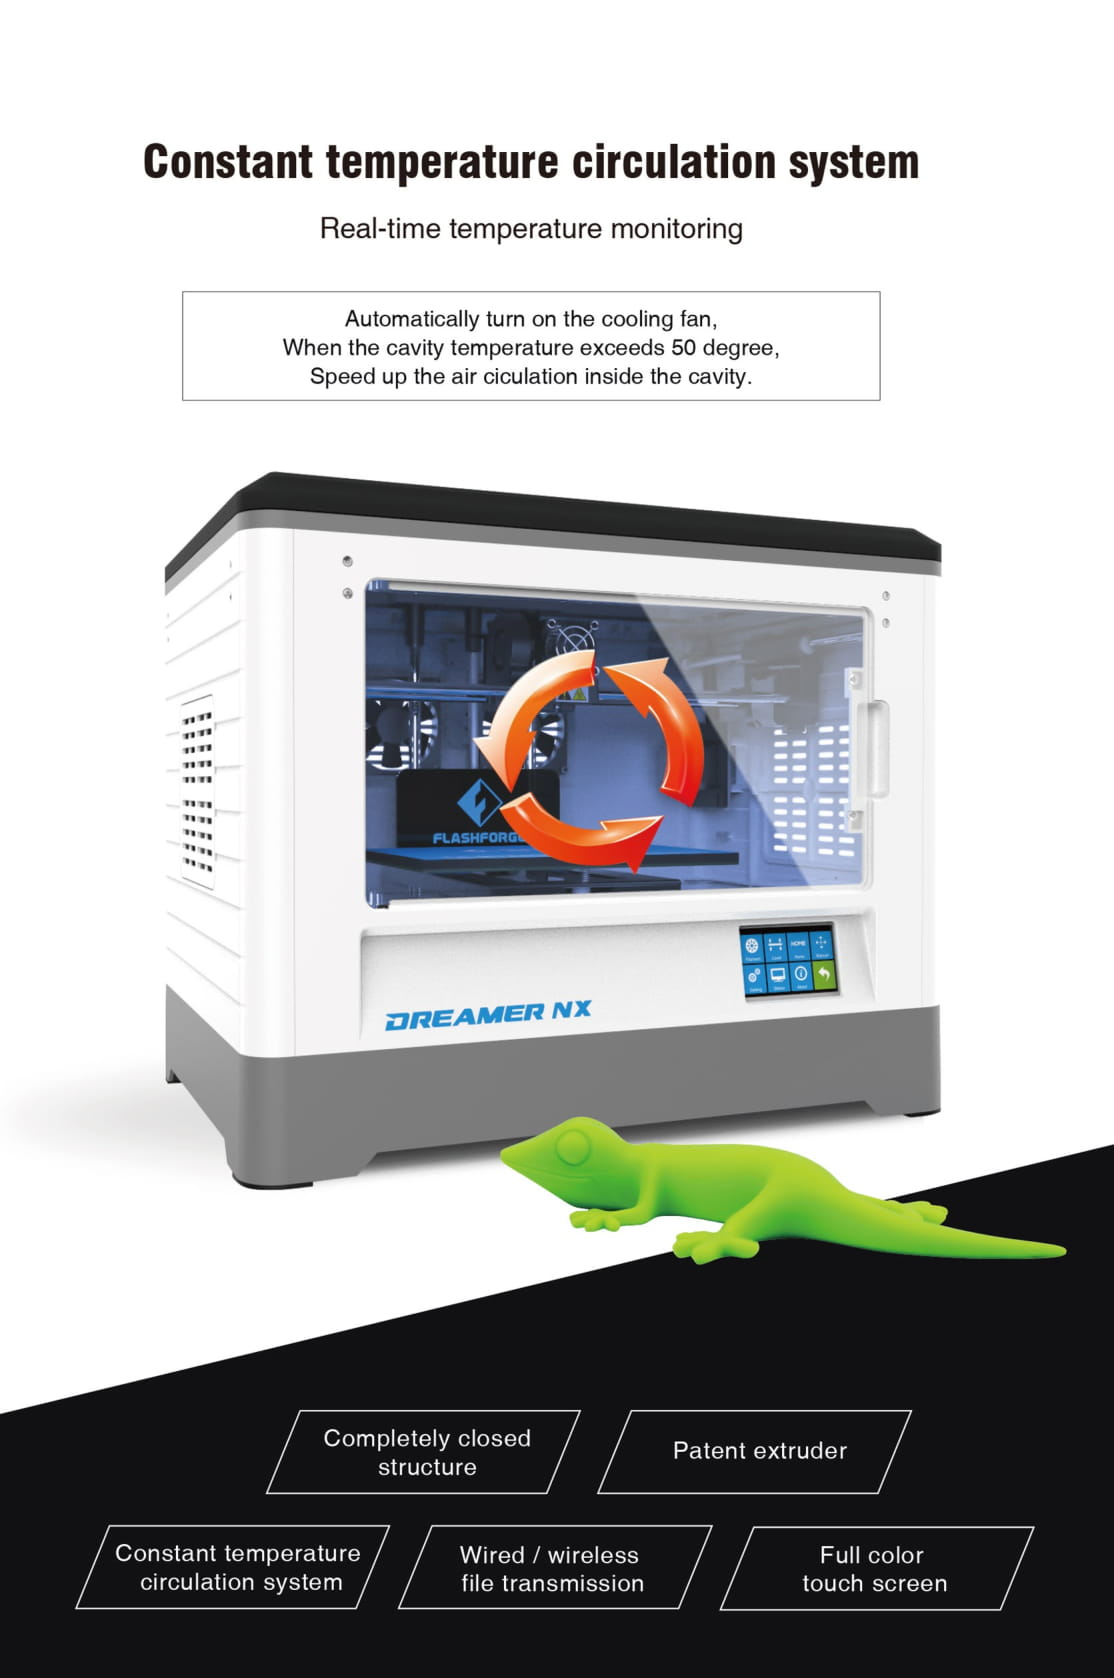 Flashforge Dreamer NX Desktop 3D Printer